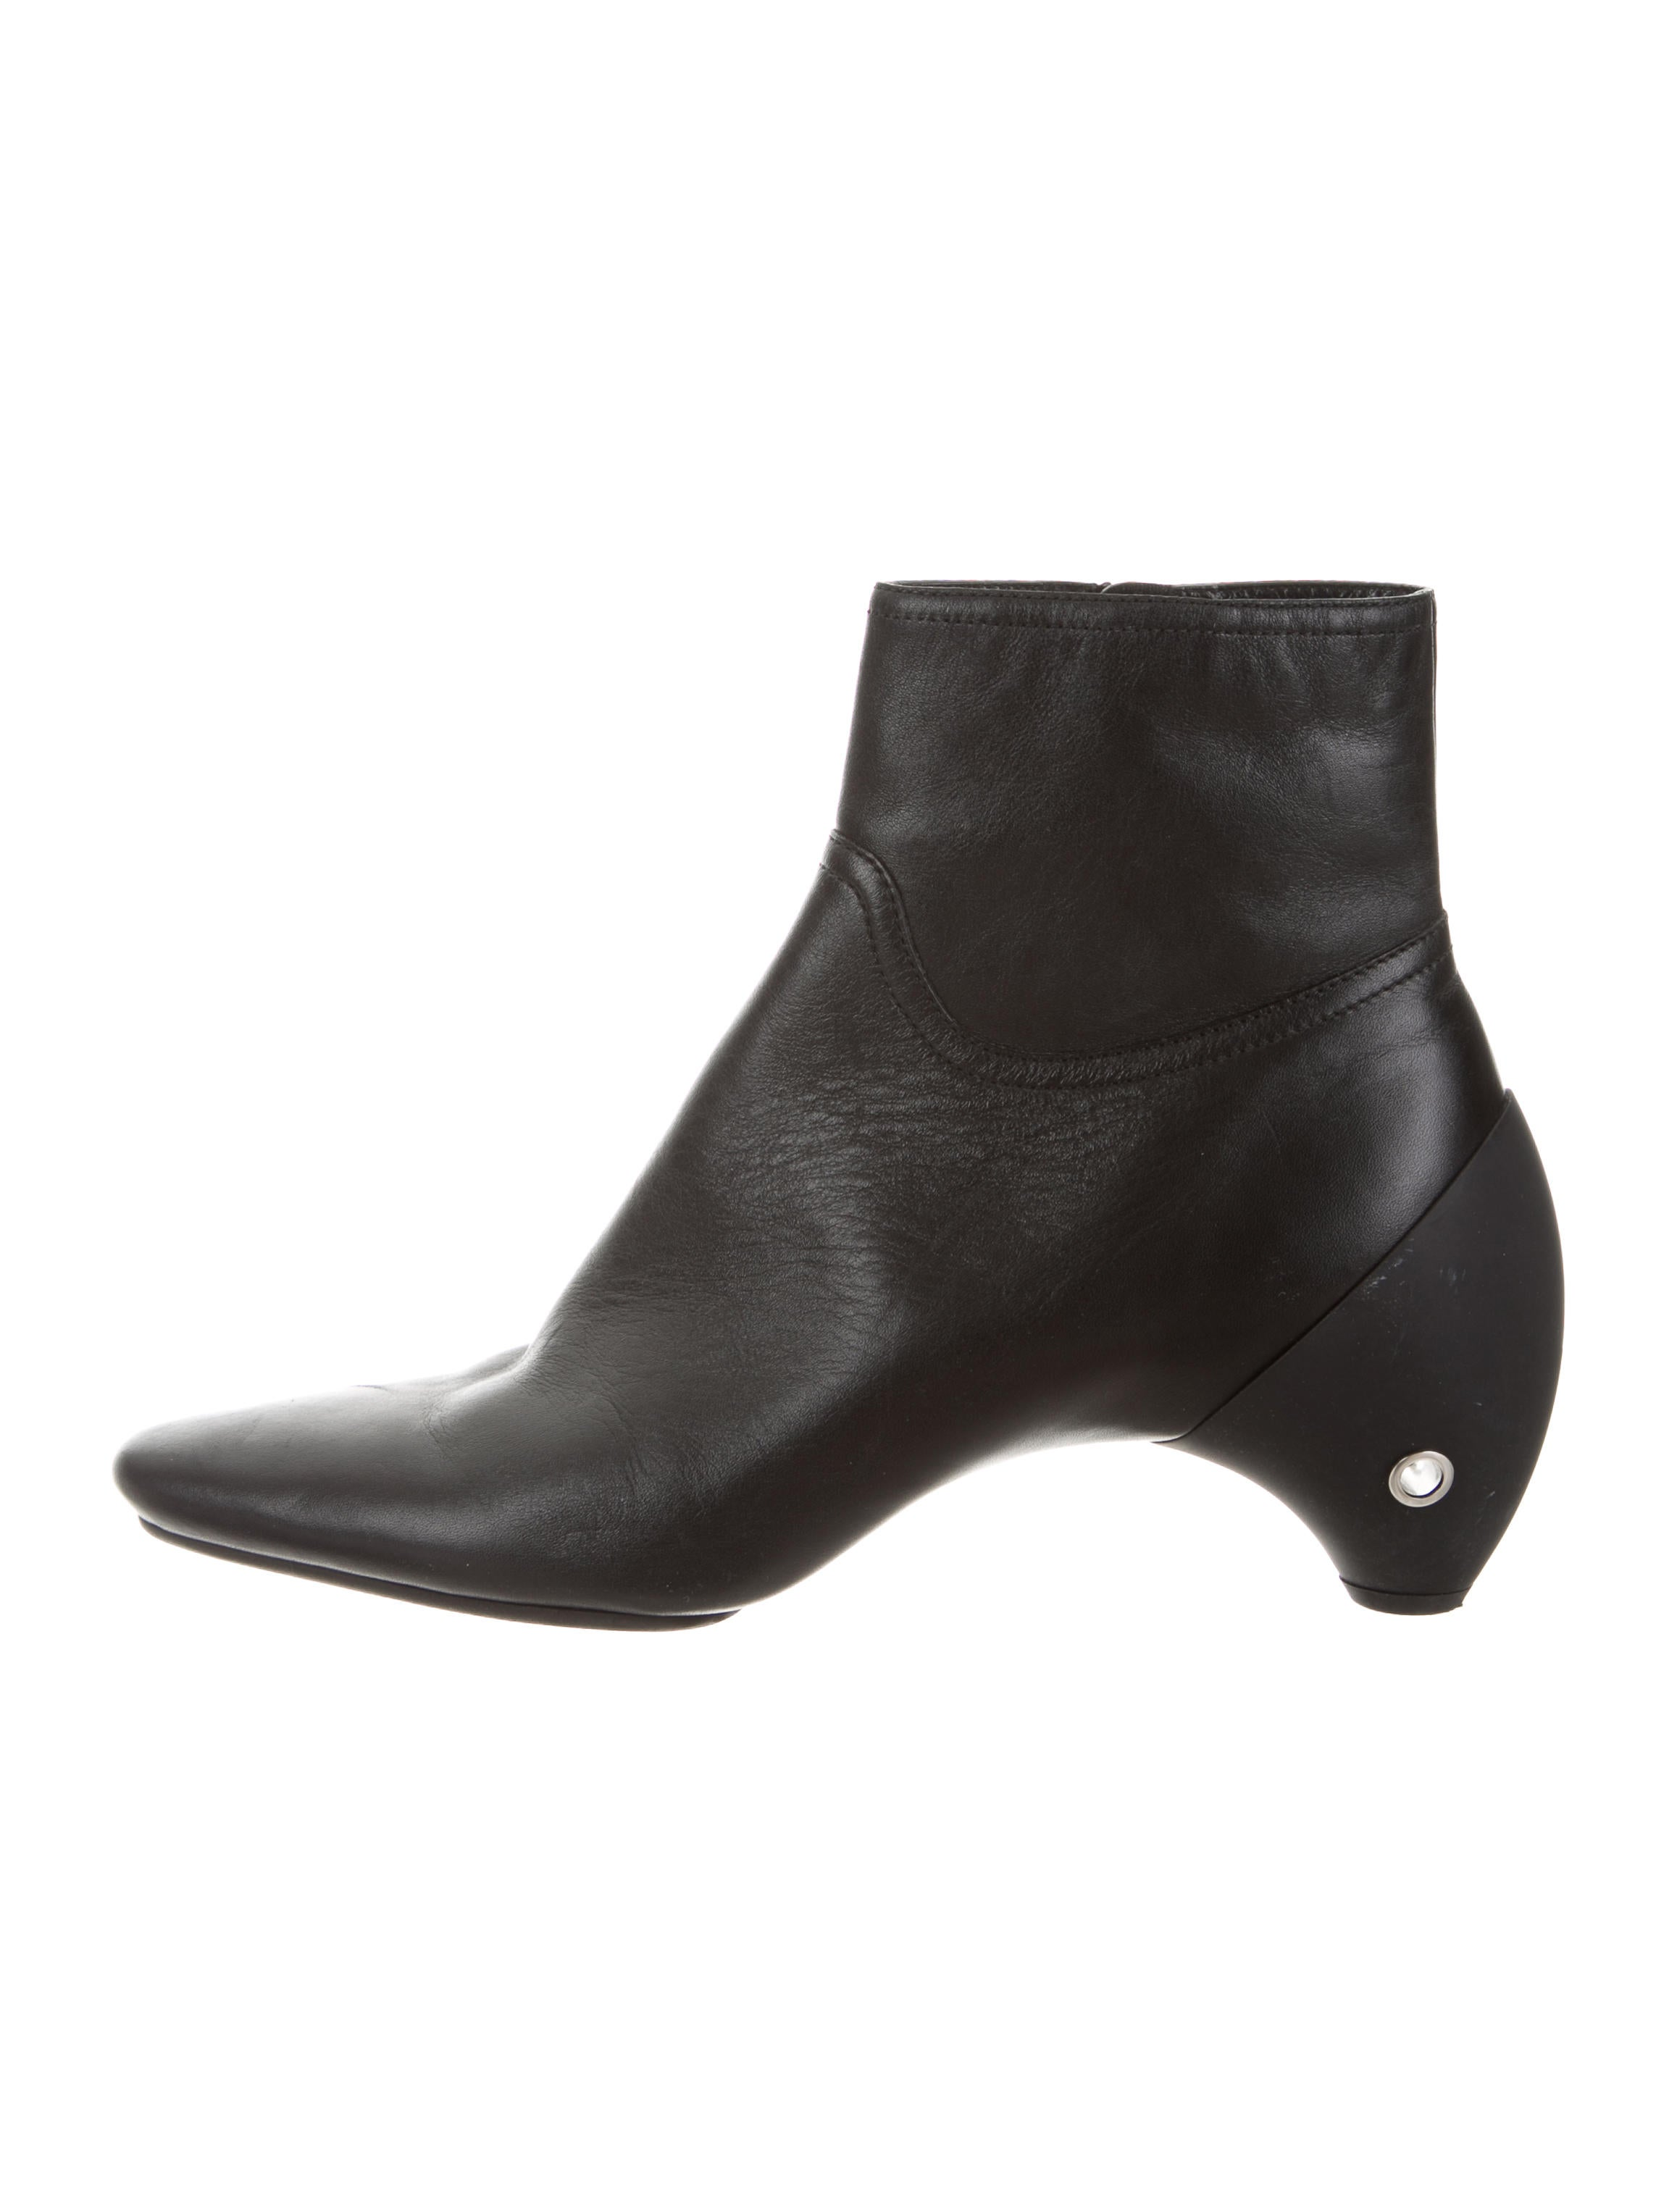 Courrèges Leather Round-Toe Ankle Boots discount big discount 0UBmP8vw5b